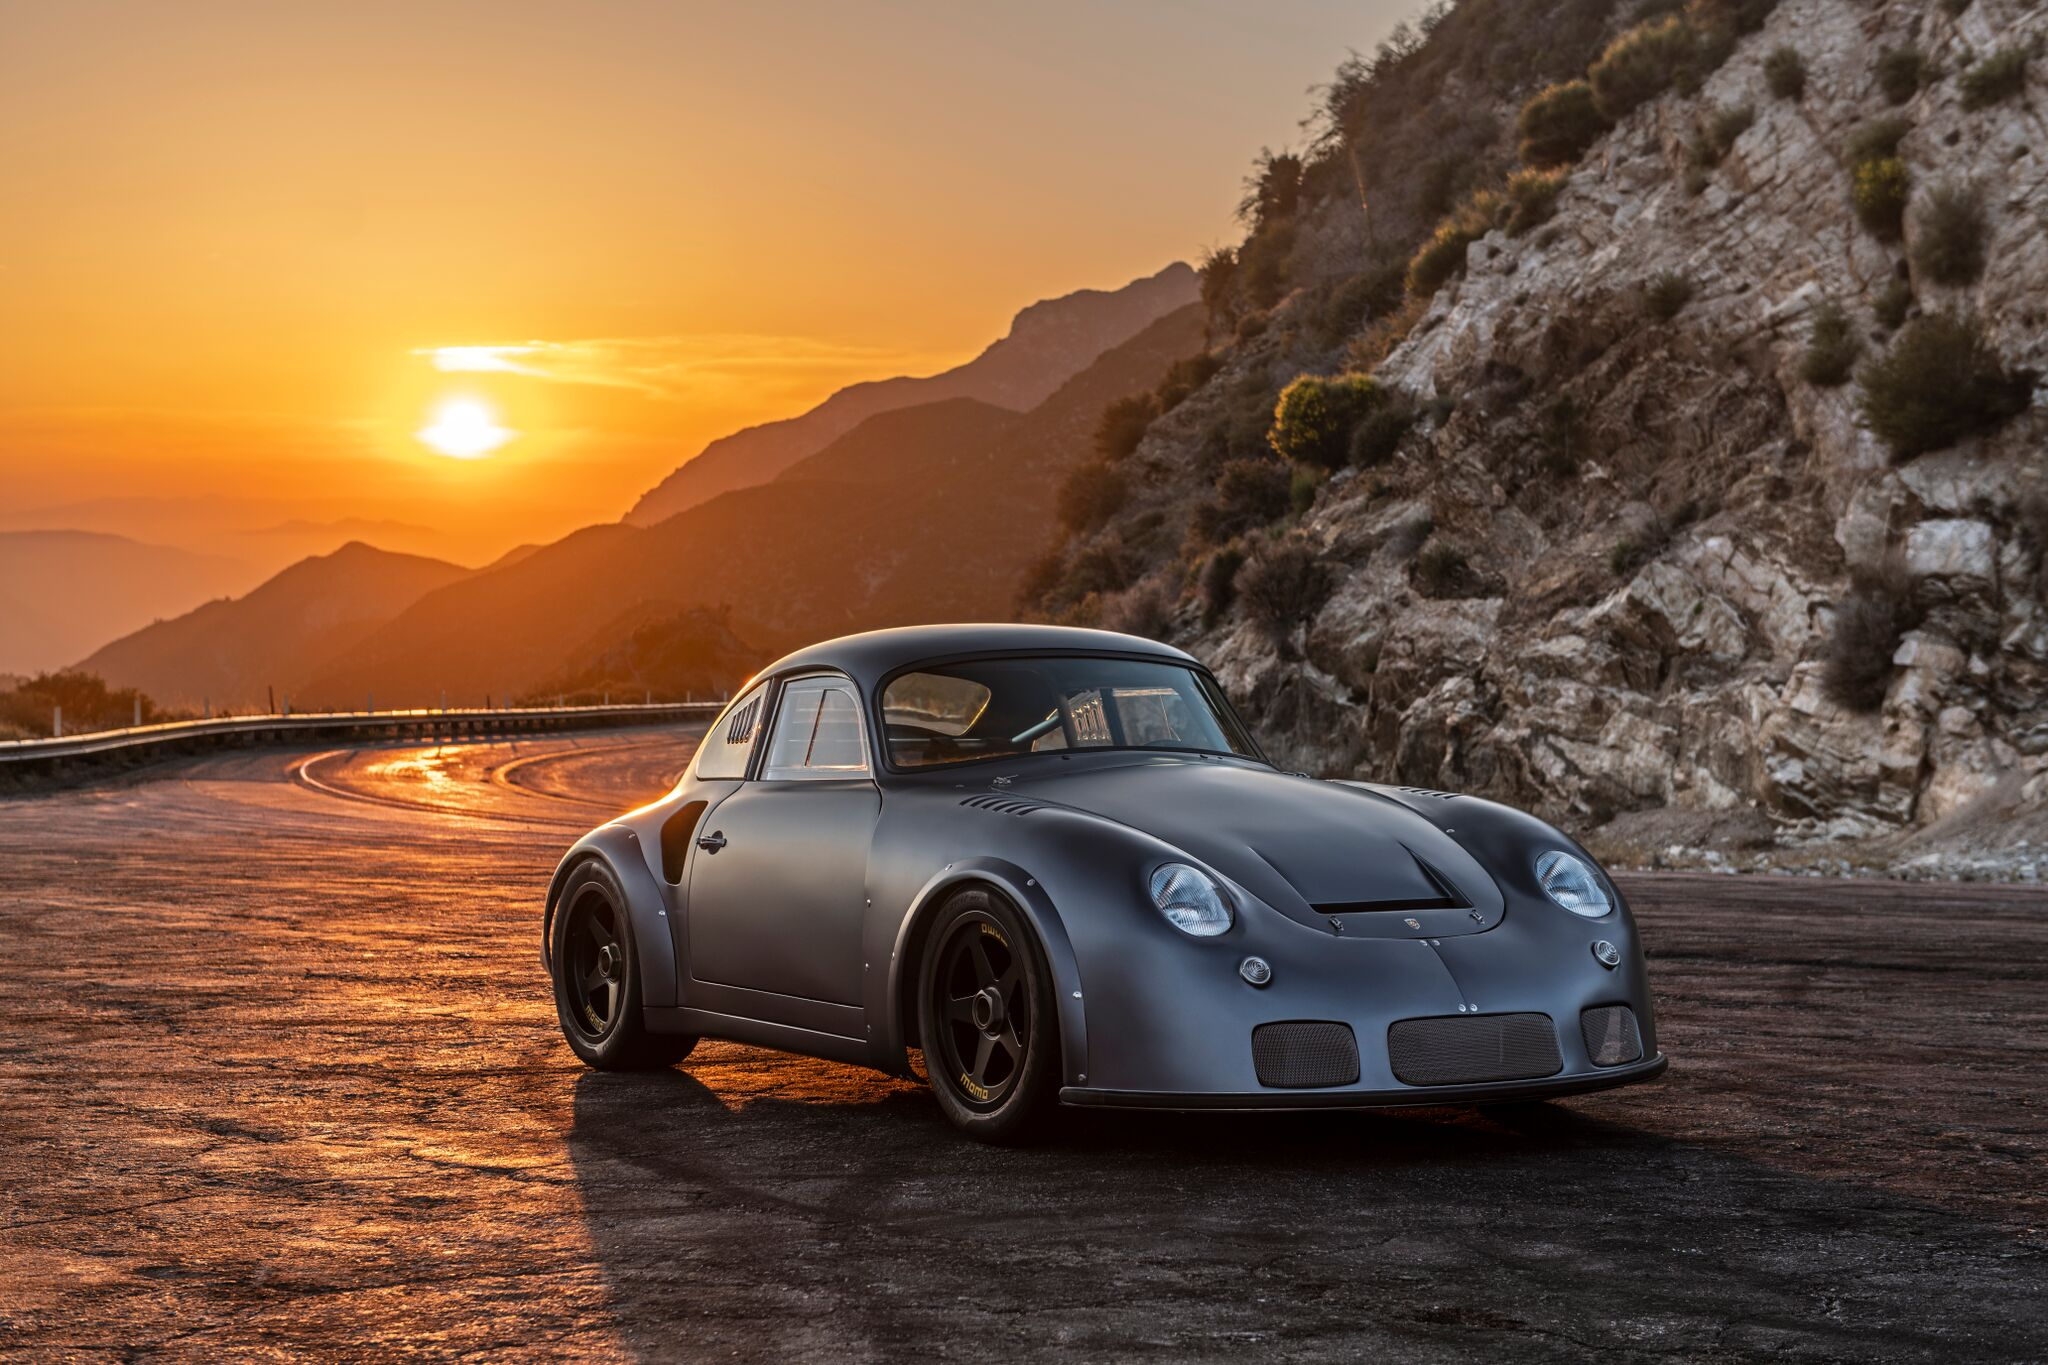 Porsche-356-RSR-Outlaw-by-Momo-and-Emory-motorsports-10